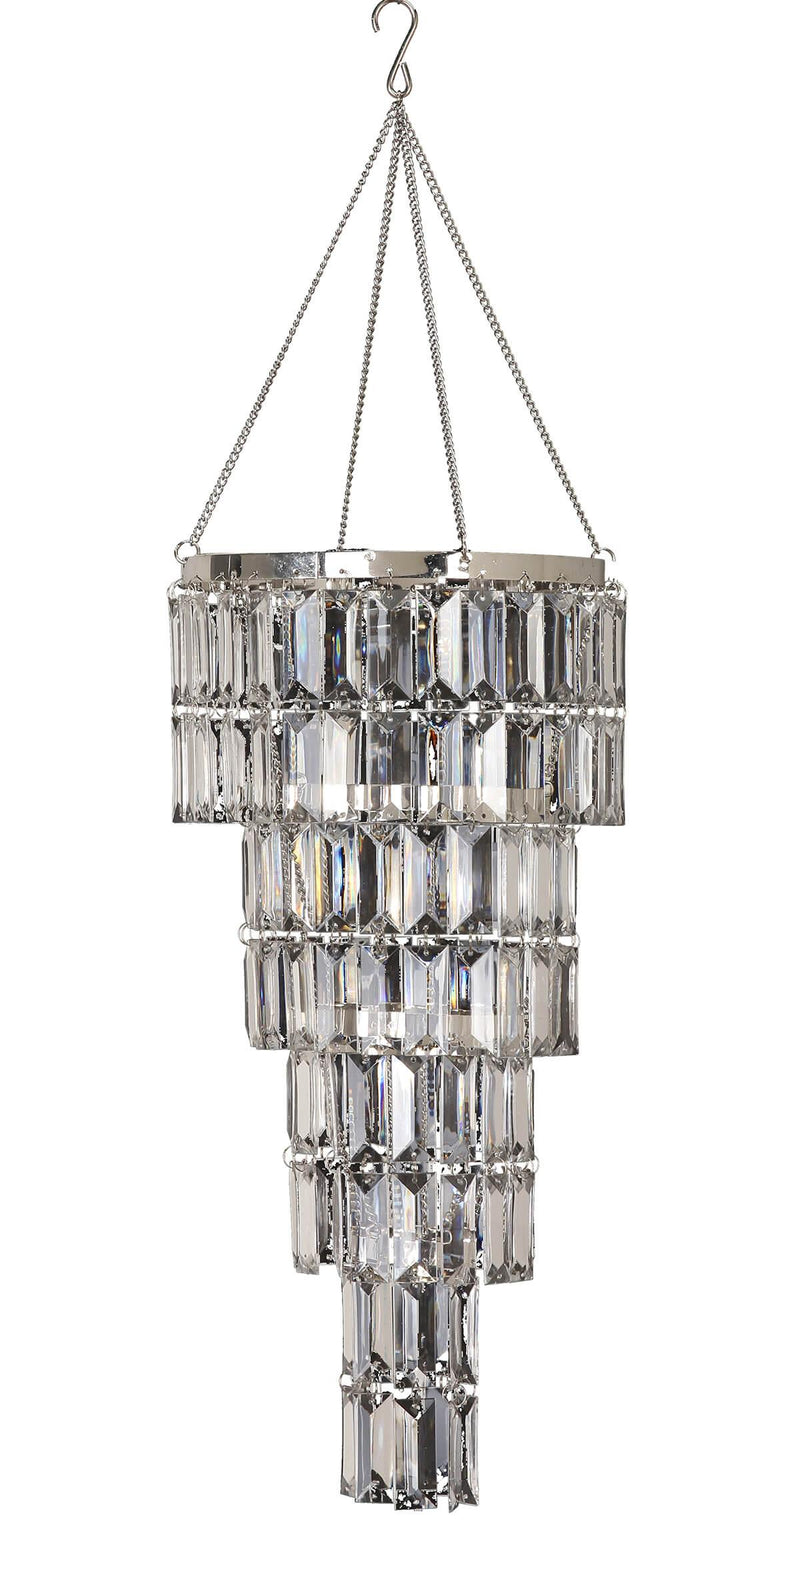 Crystal Chandelier, Round 17in, with lighting kit